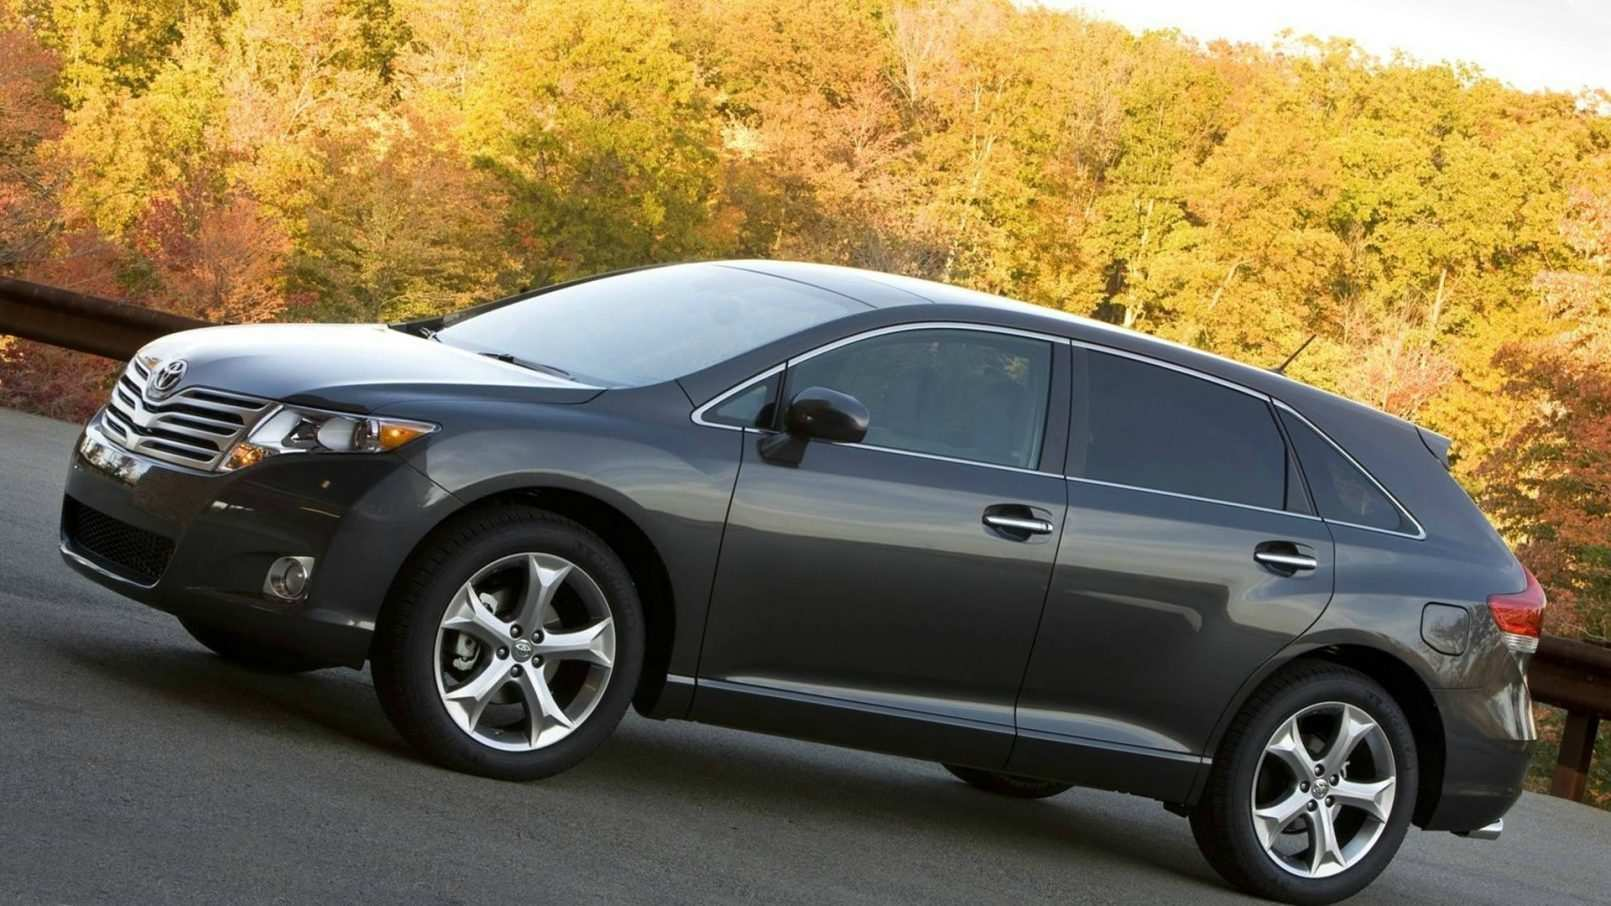 95 All New 2019 Toyota Venza Redesign